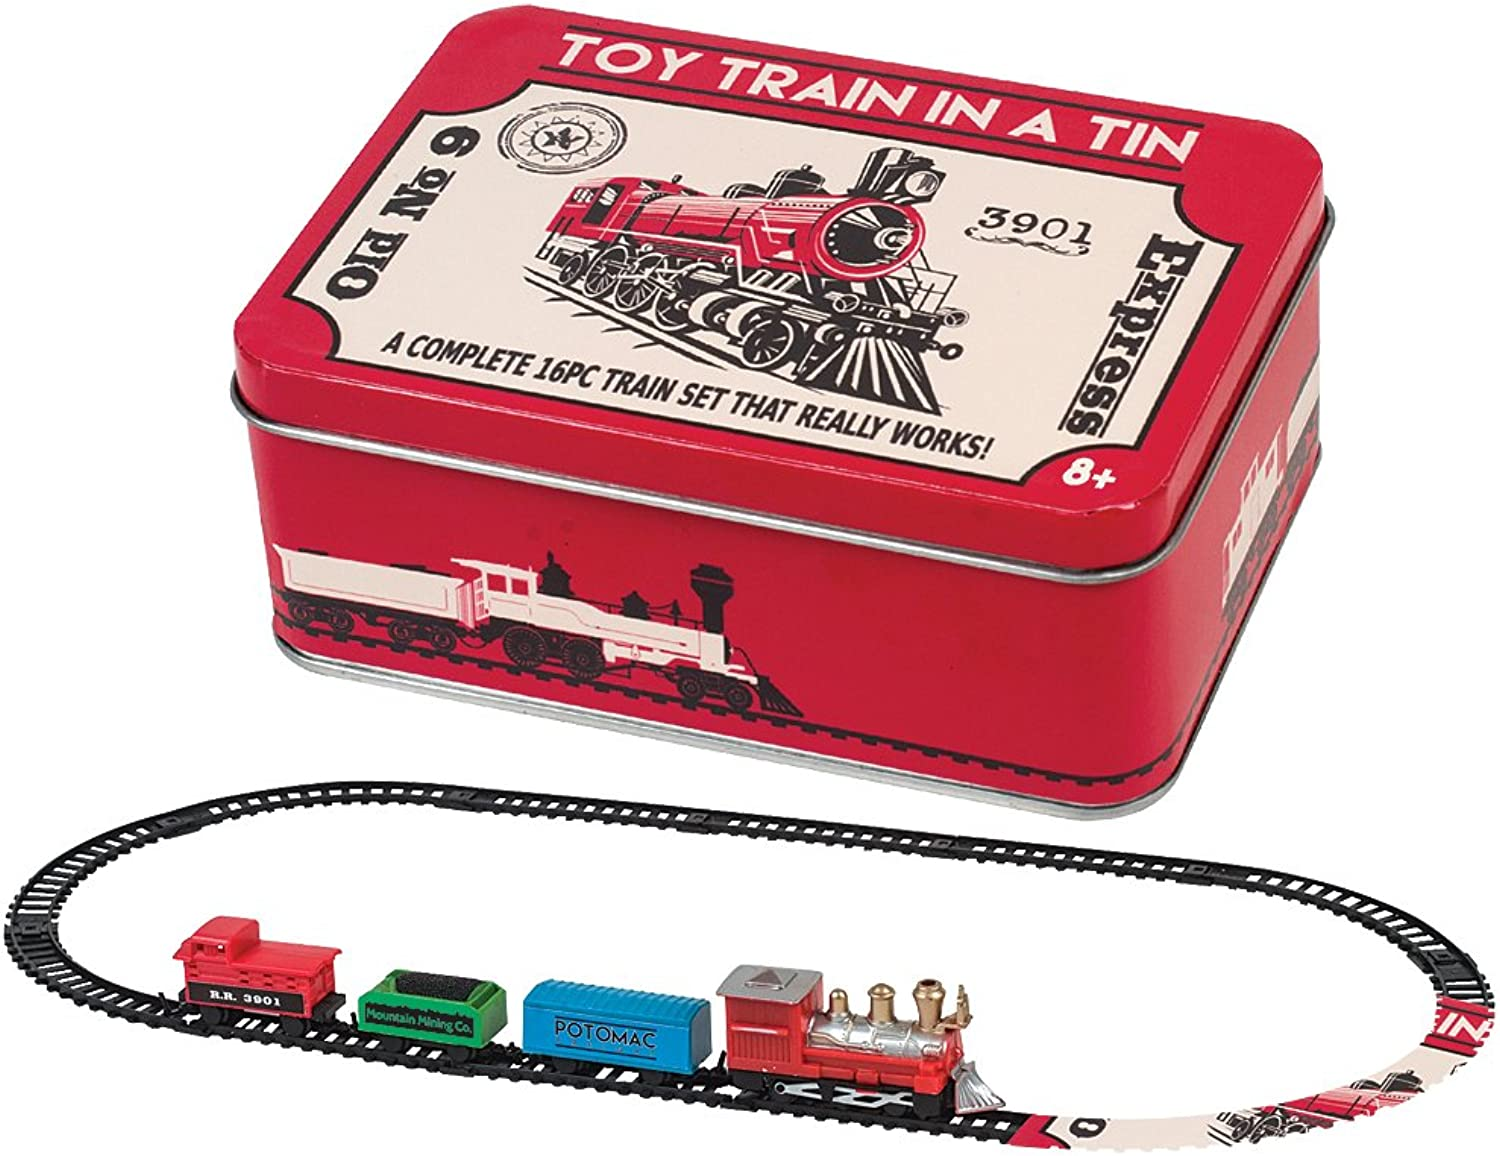 Train in A Tin by Westminster Inc. by Westminster